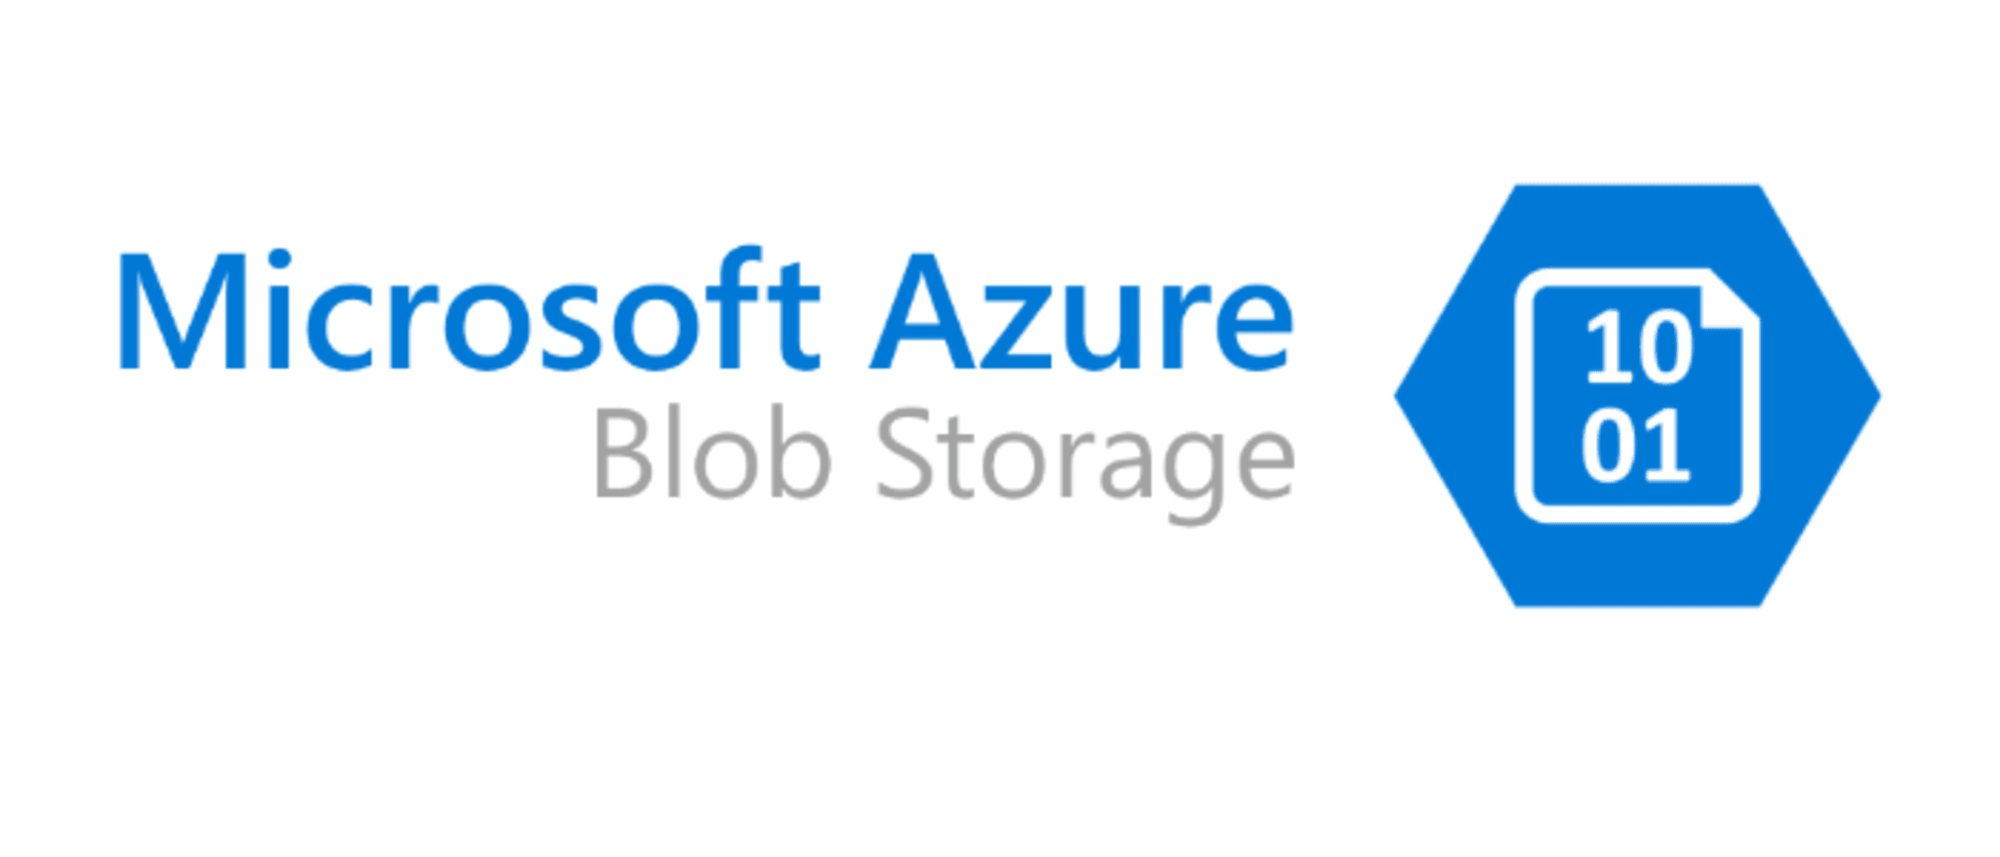 How To Manage Files Between Local And Azure Storage With AZCopy